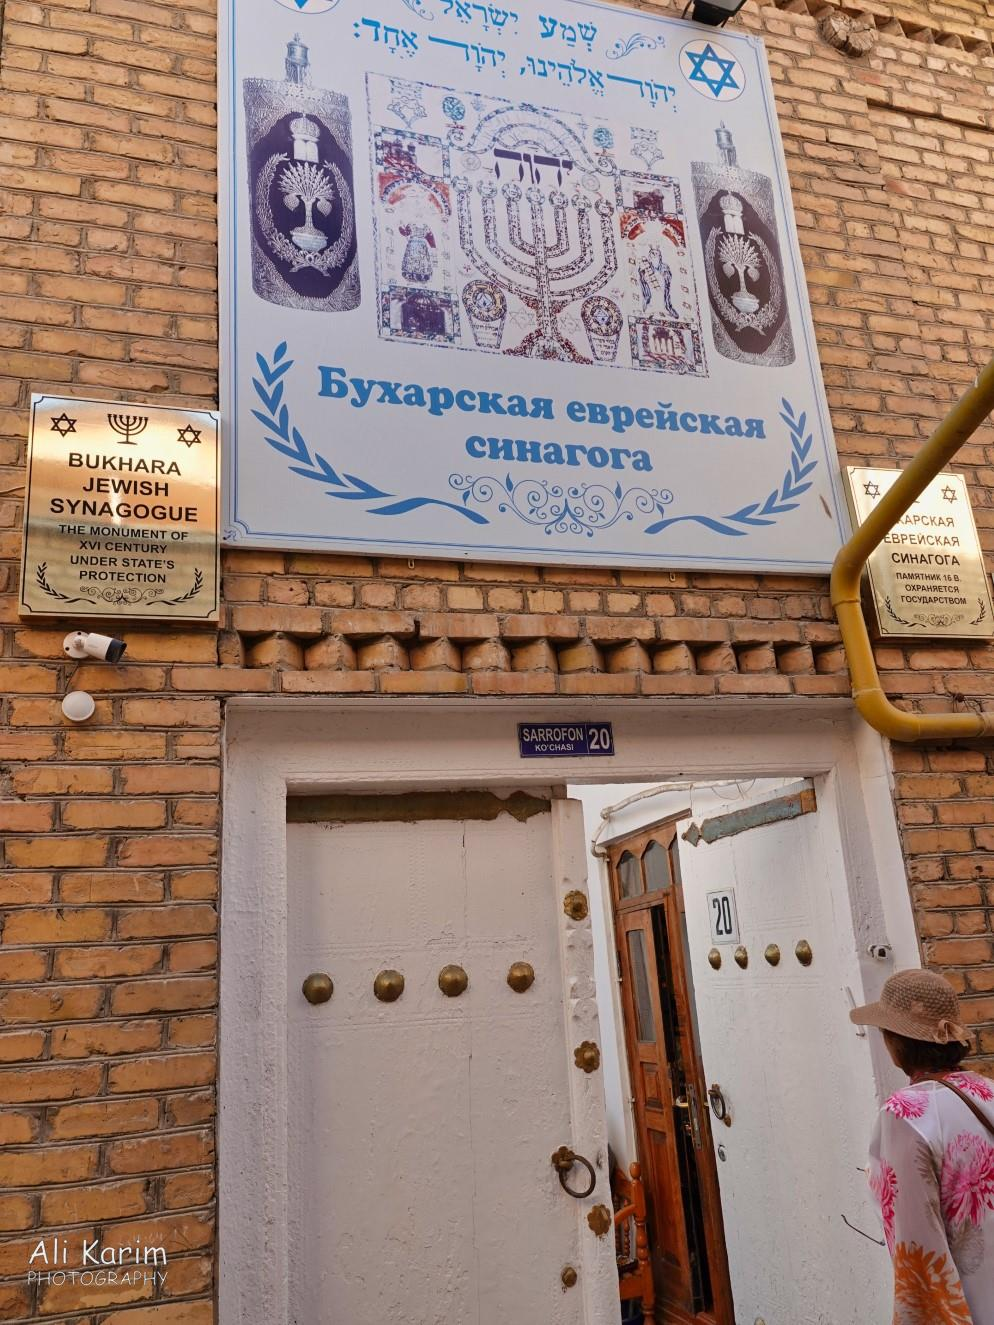 Bukhara, Oct 2019, There was a working Jewish Synagogue that we visited. Jews settled here during the Silk road trading days; currently, there are only a small handful of Jewish families left here